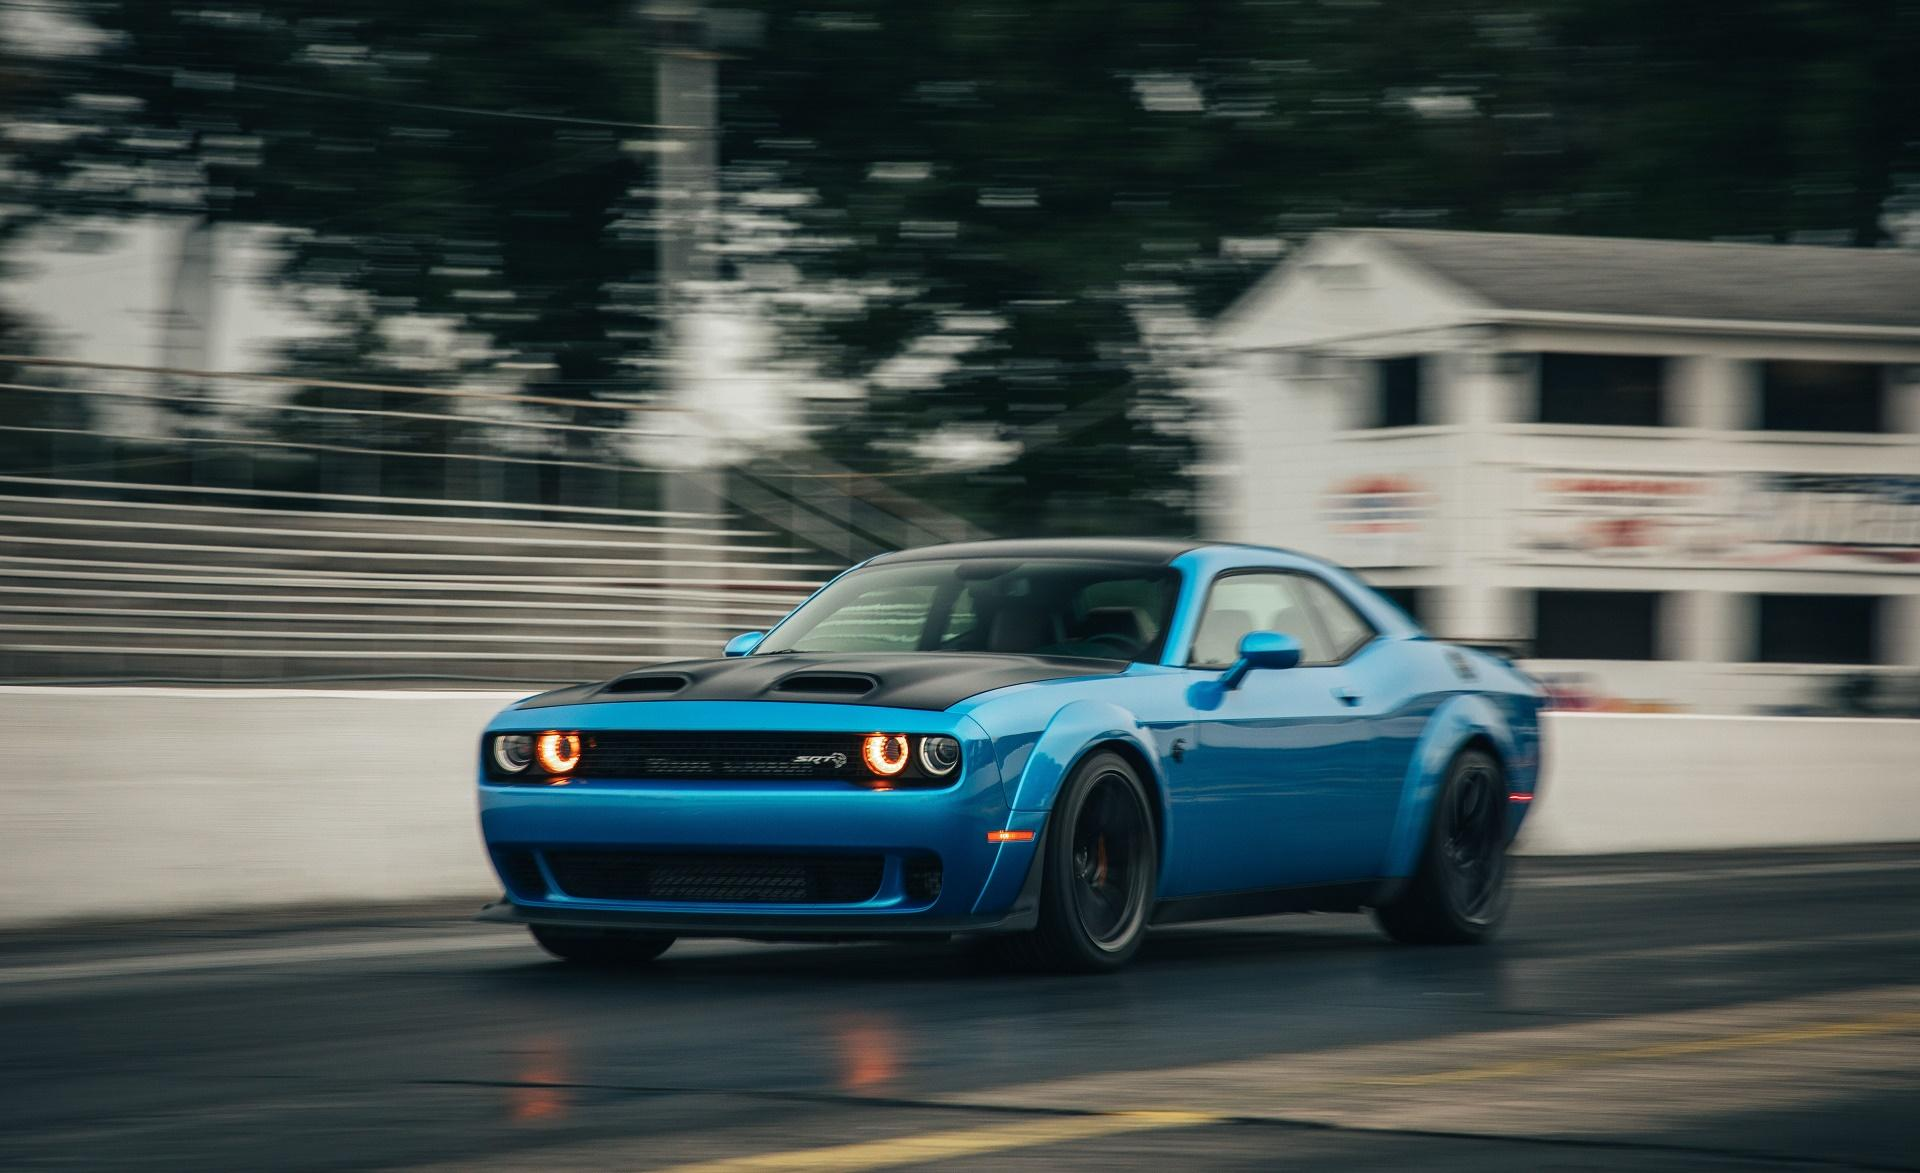 2019 Dodge Challenger SRT Hellcat Redeye Wallpapers